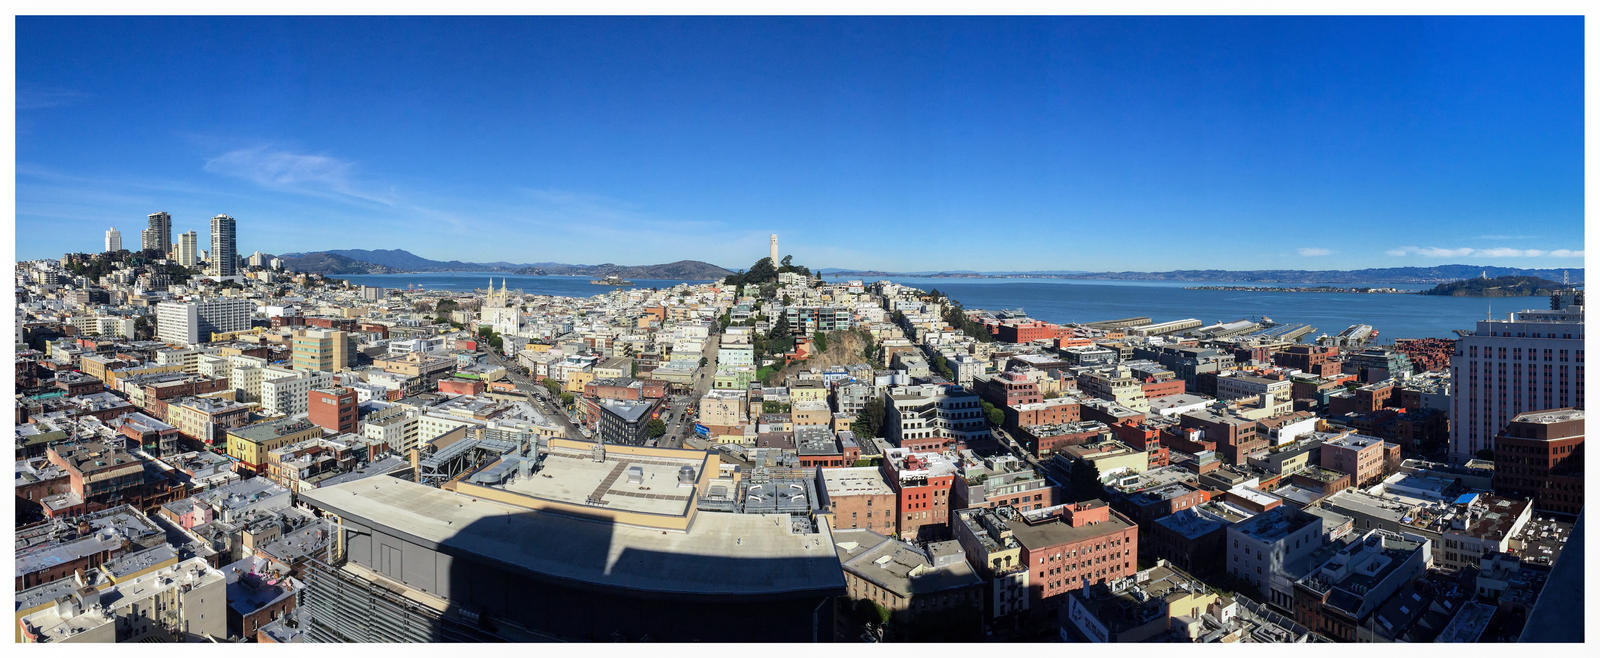 Coit Tower by makepictures